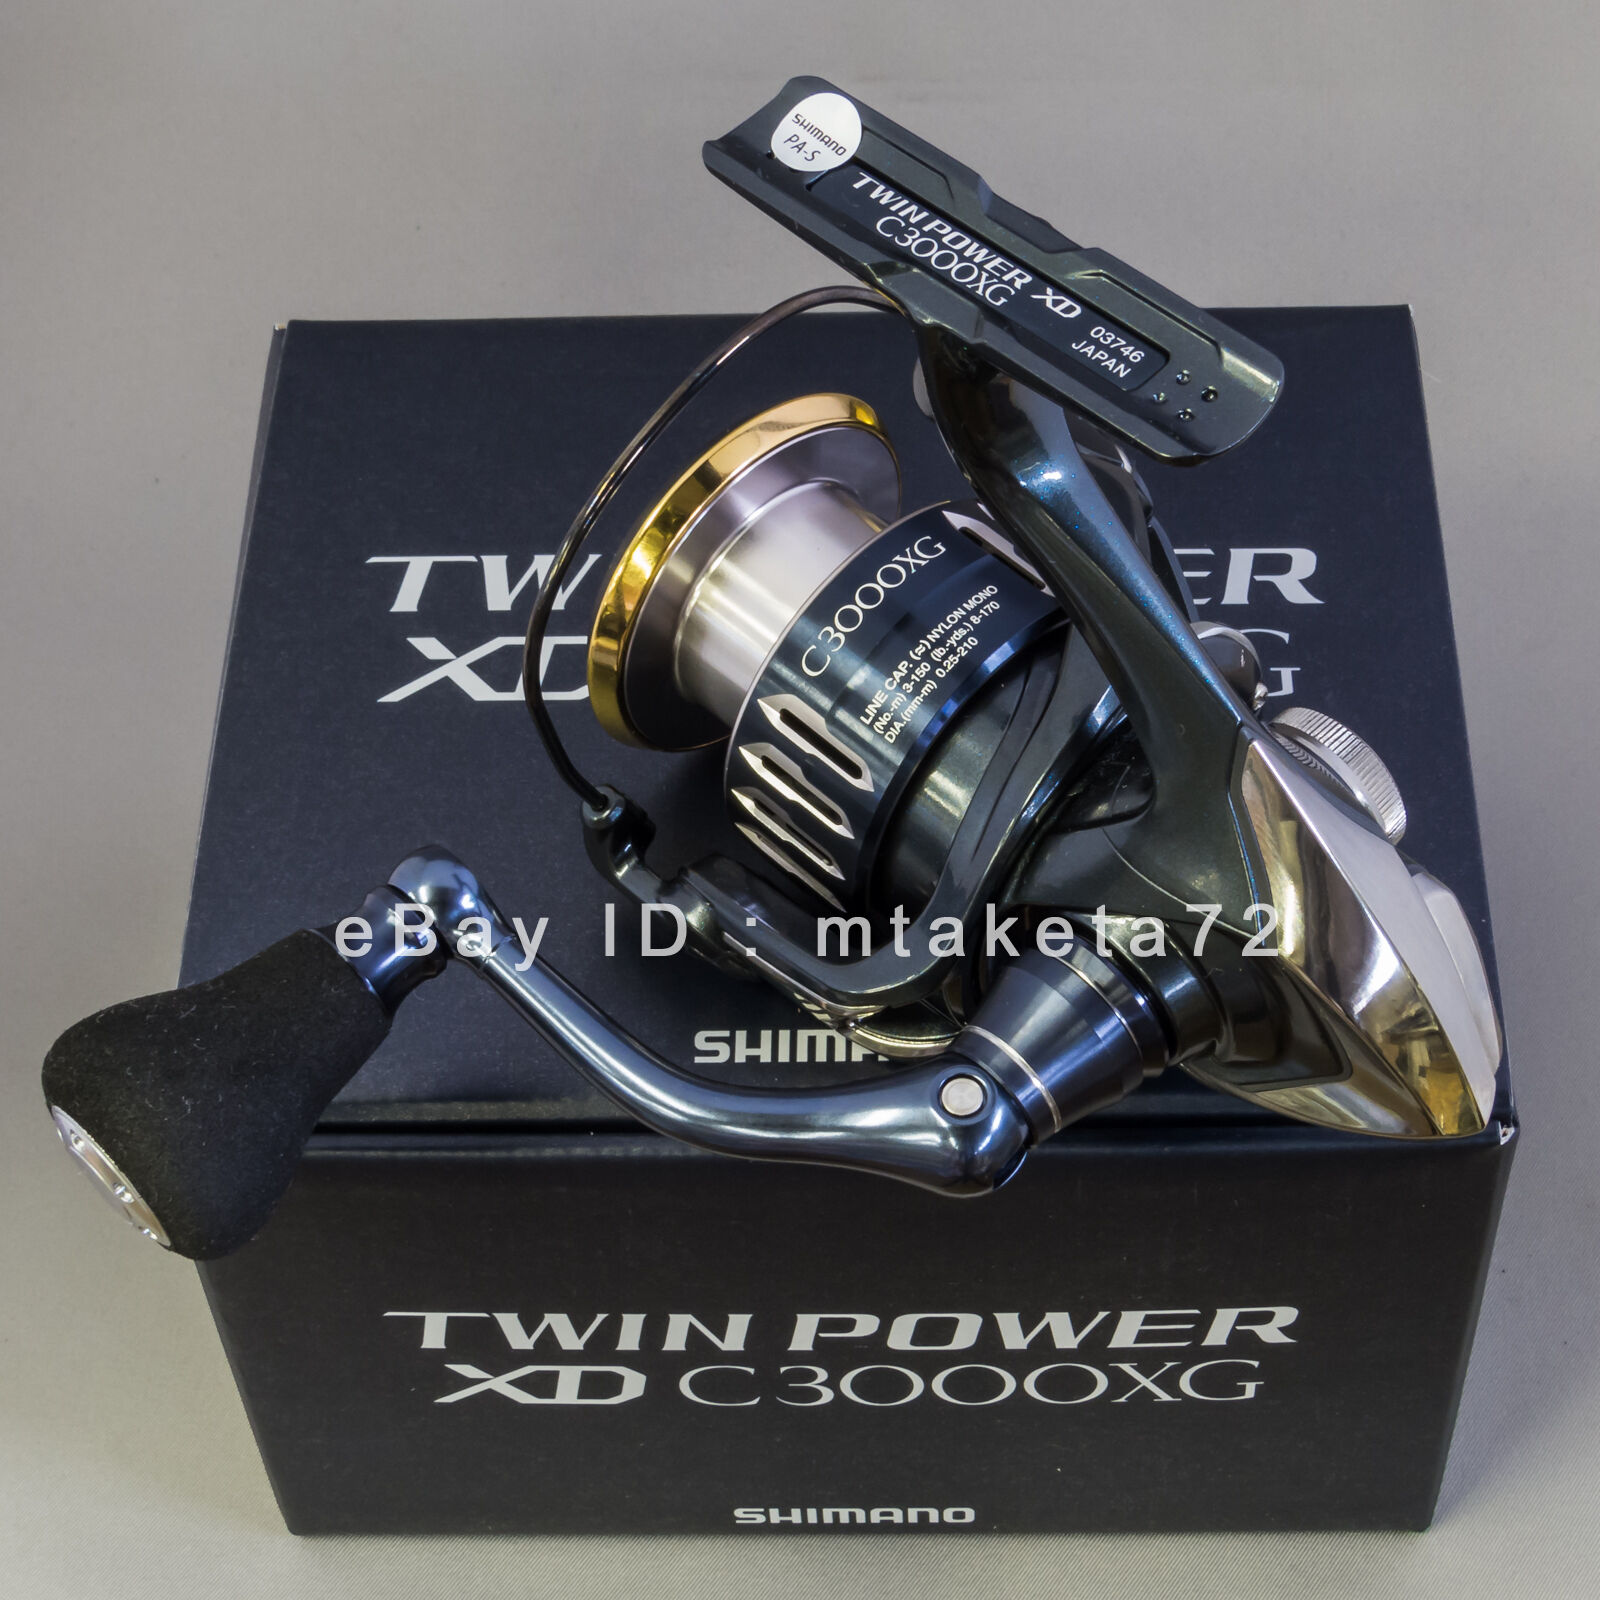 Shimano 17 TWIN POWER XD C3000XG, Spinning Reel Made in Japan, 037466